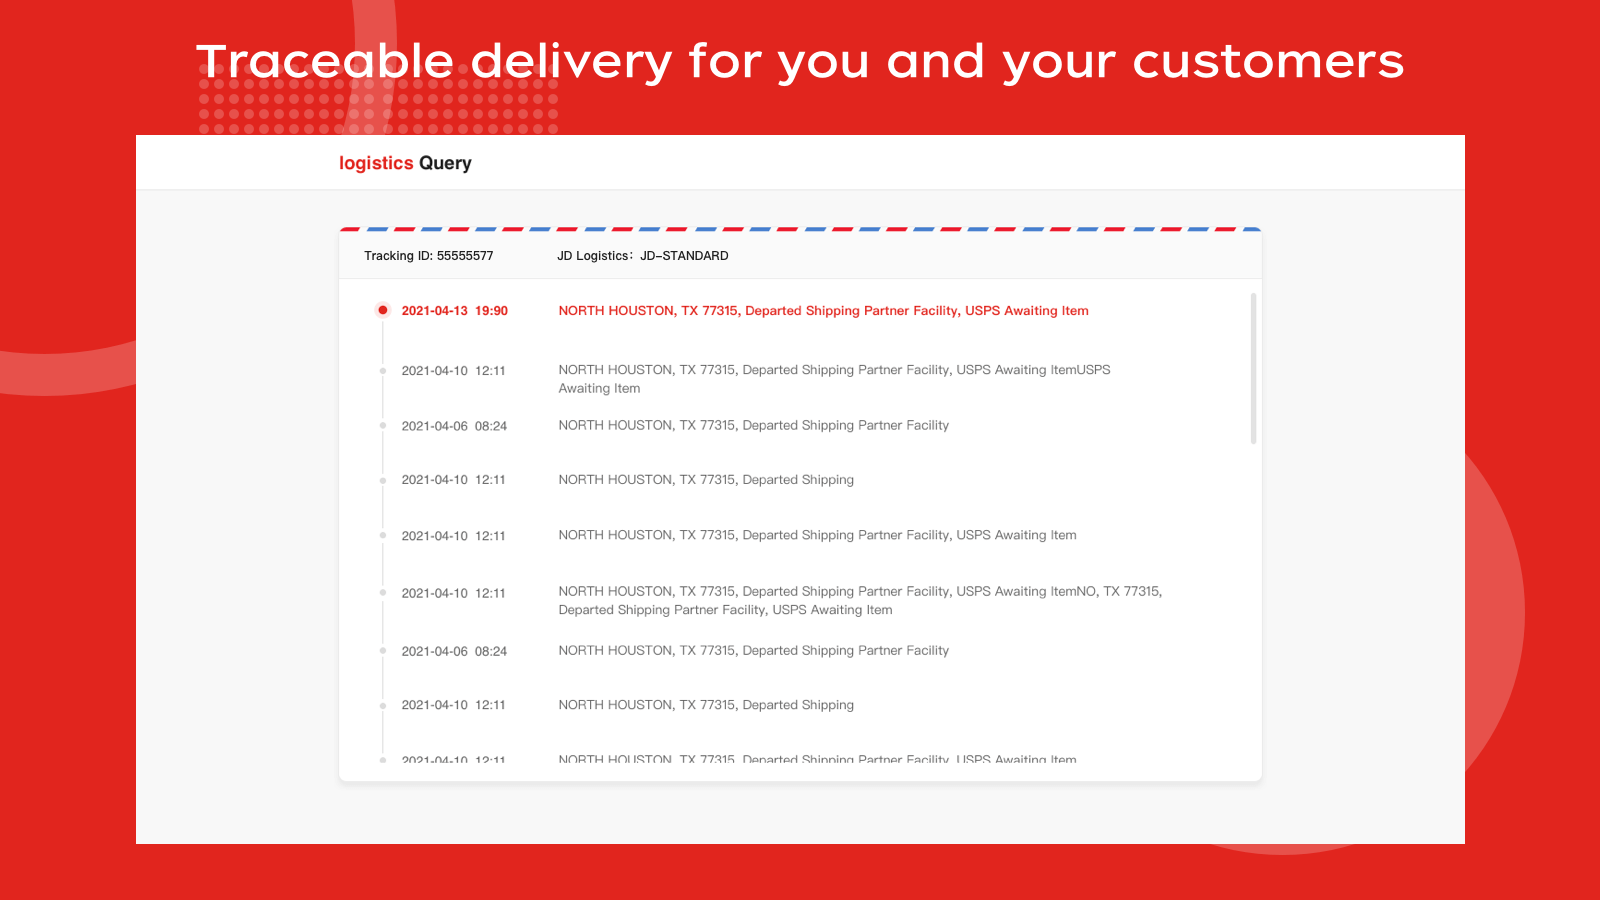 Traceable delivery for you and your customers